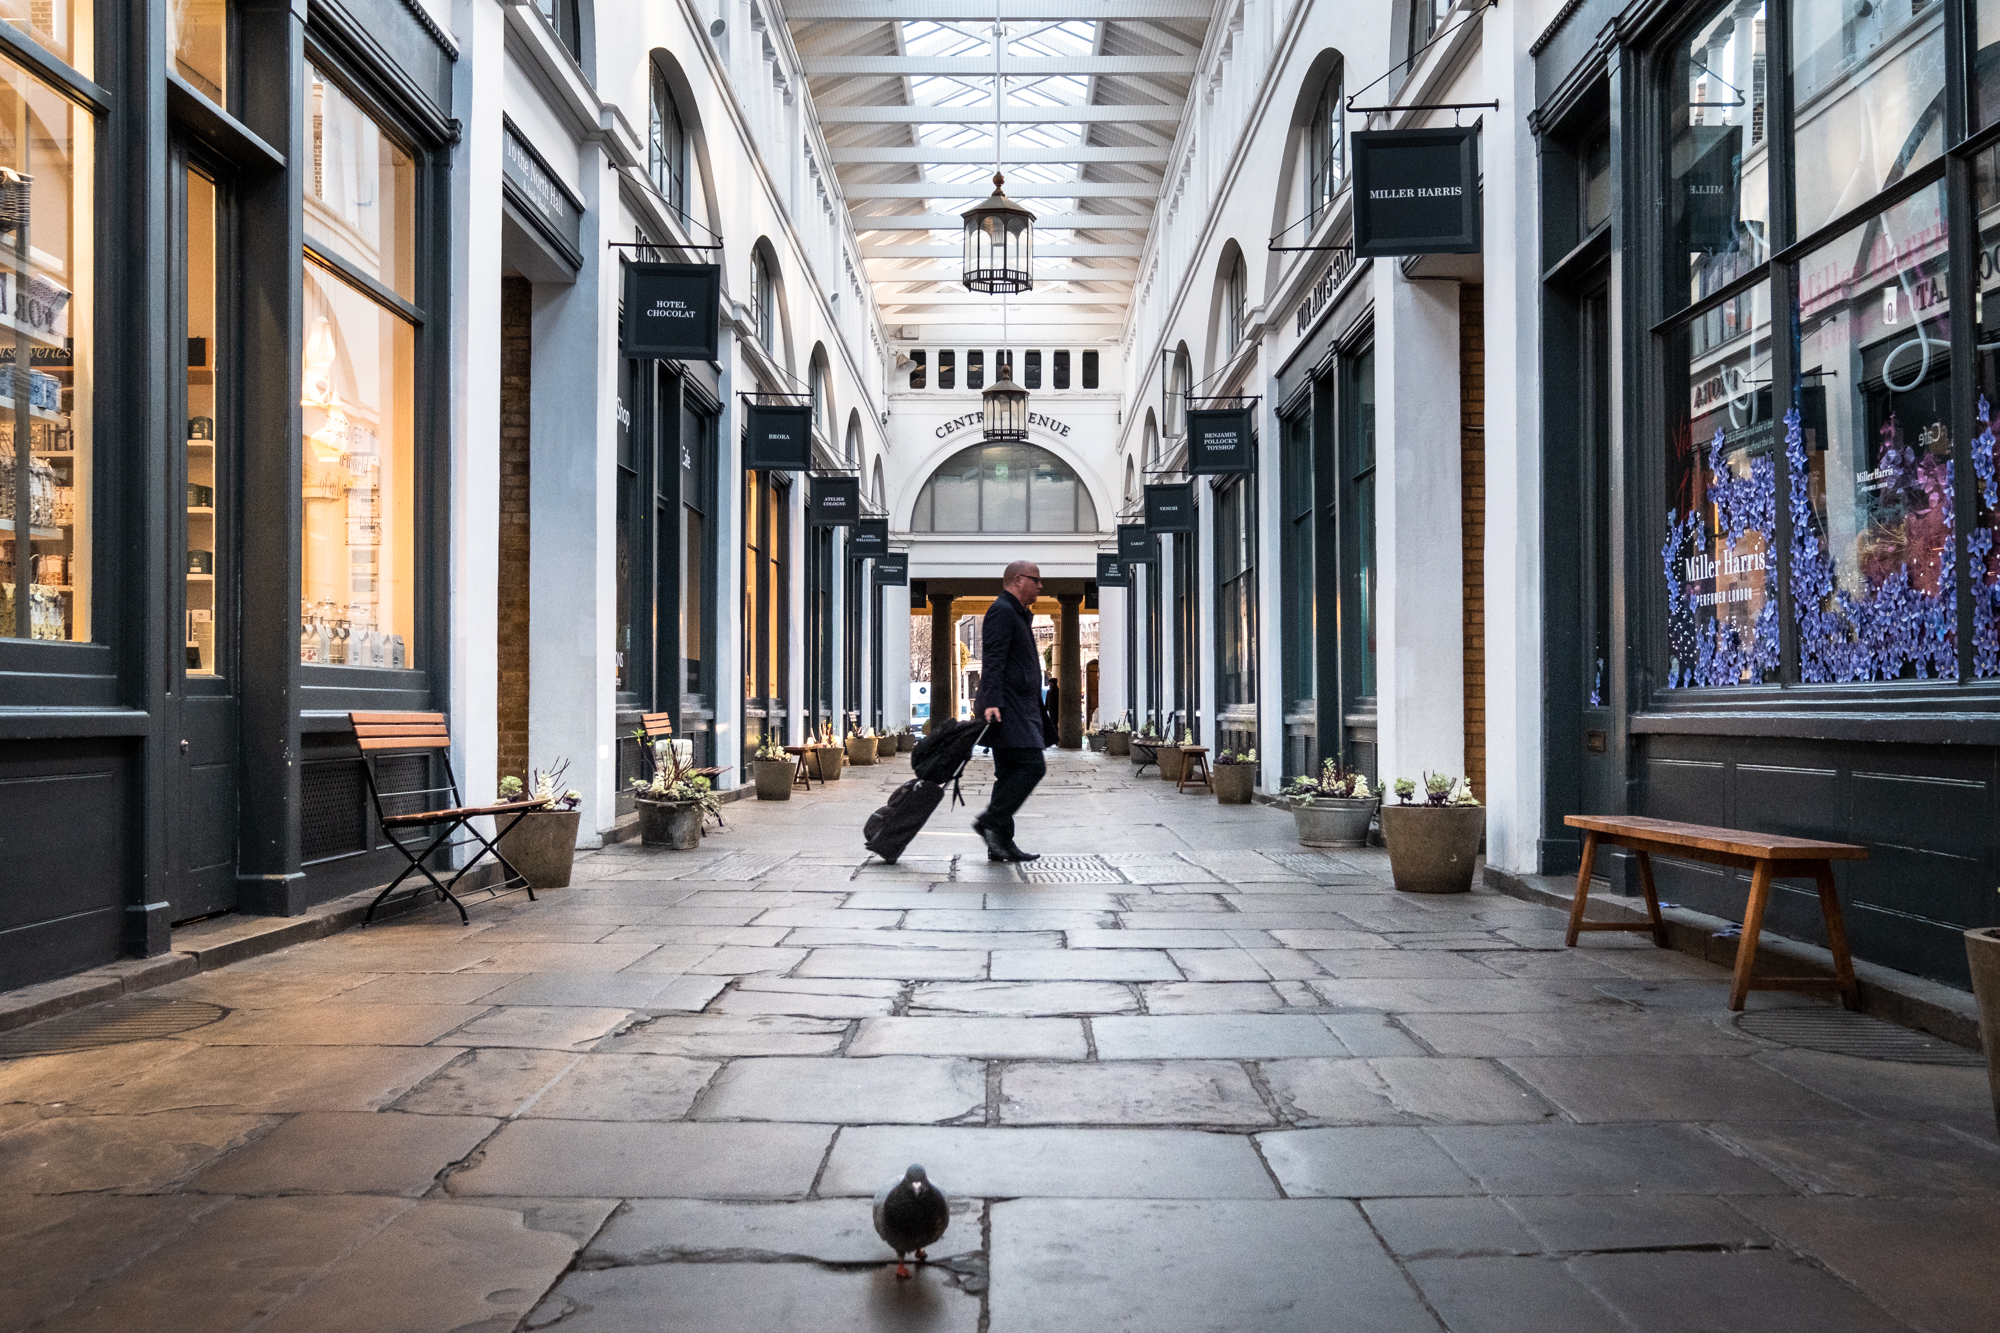 A photo of a man and a pigeon walking in the market building, Covent Garden, London taken by Trevor Sherwin